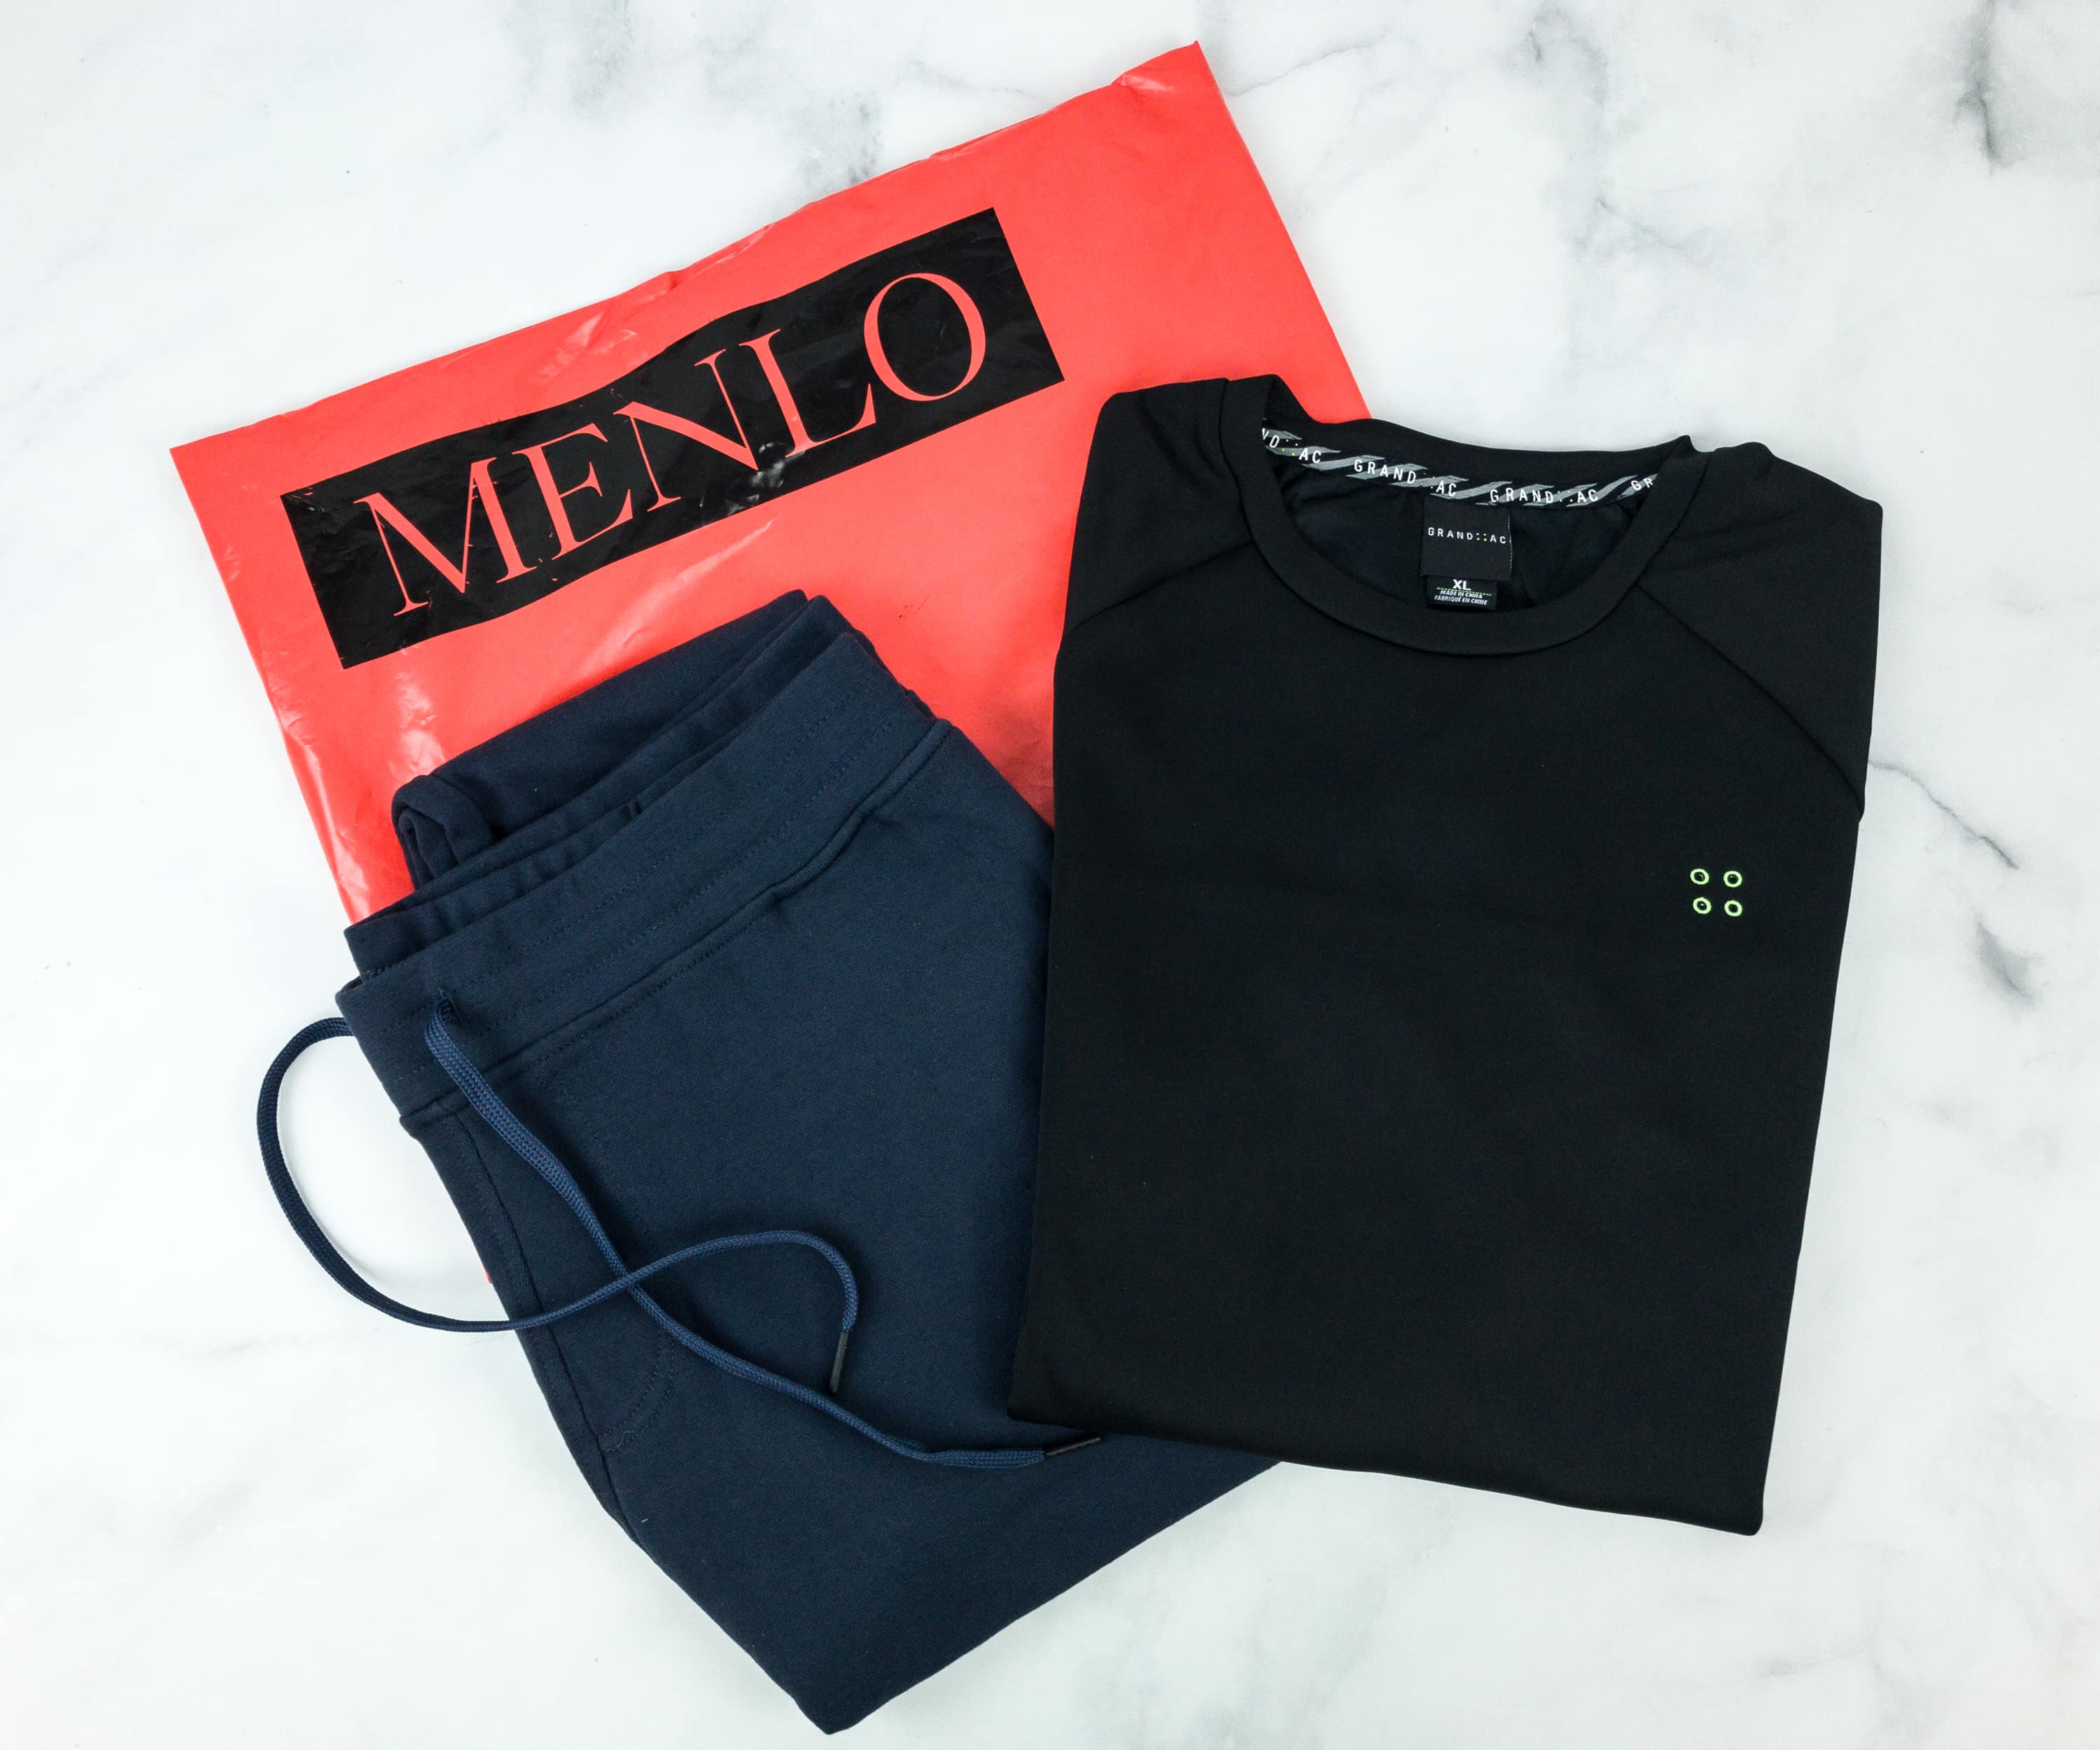 Menlo Club January 2019 Subscription Box Review + Coupon